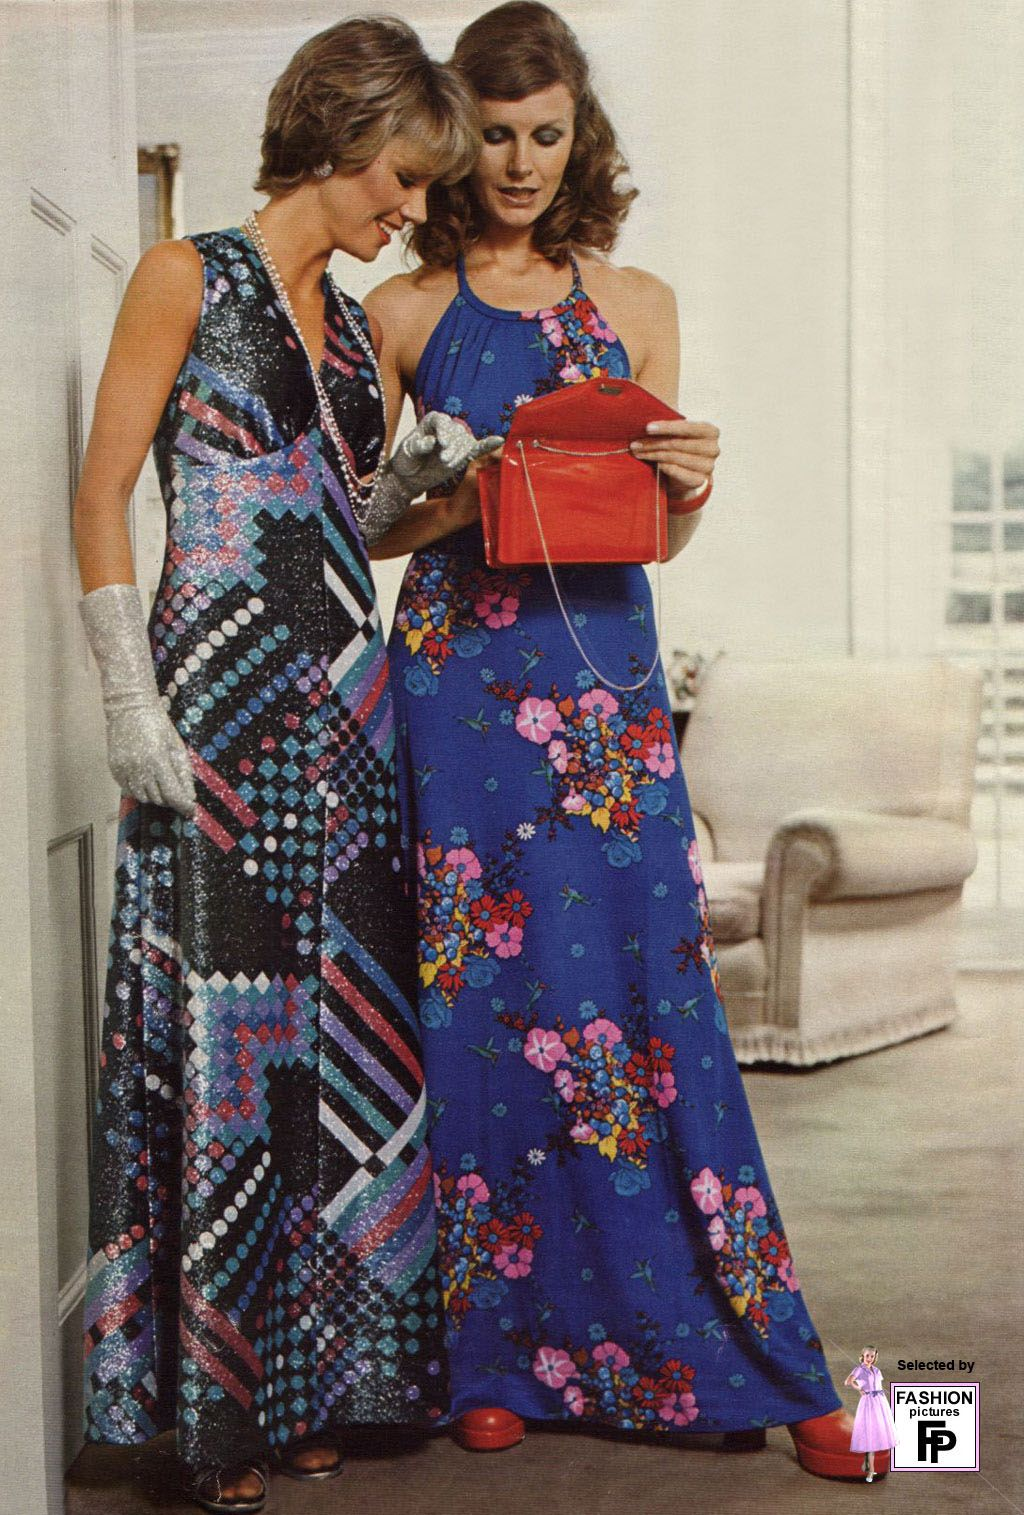 S fashioni always loved my maxi or midisbut in better